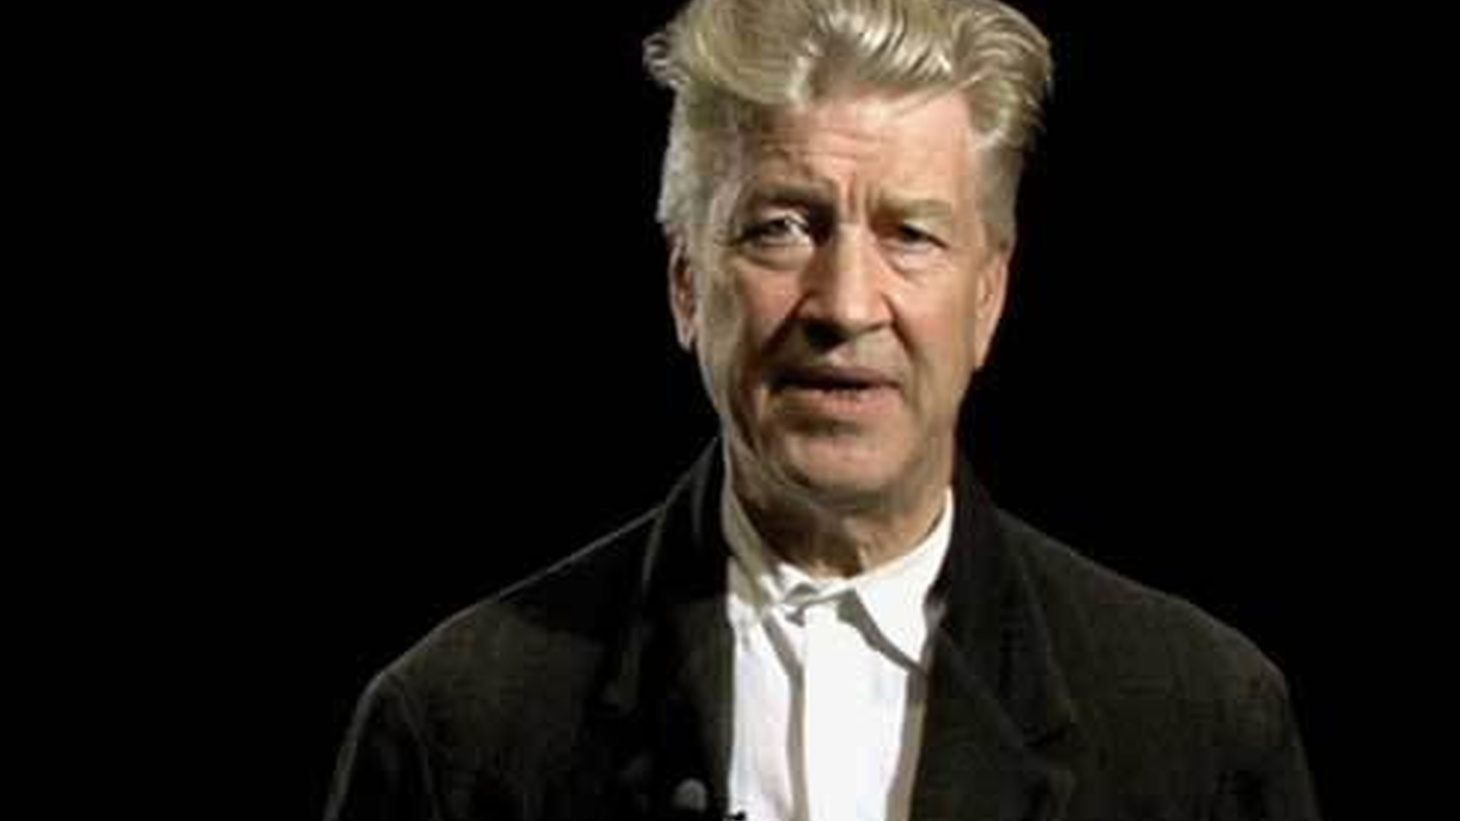 An exciting morning is in store when director turned musician David Lynch joins Morning Becomes Eclectic to talk about his new endeavor in the 10 o'clock hour followed by a full session with electronic giants Underworld at 11:15am.